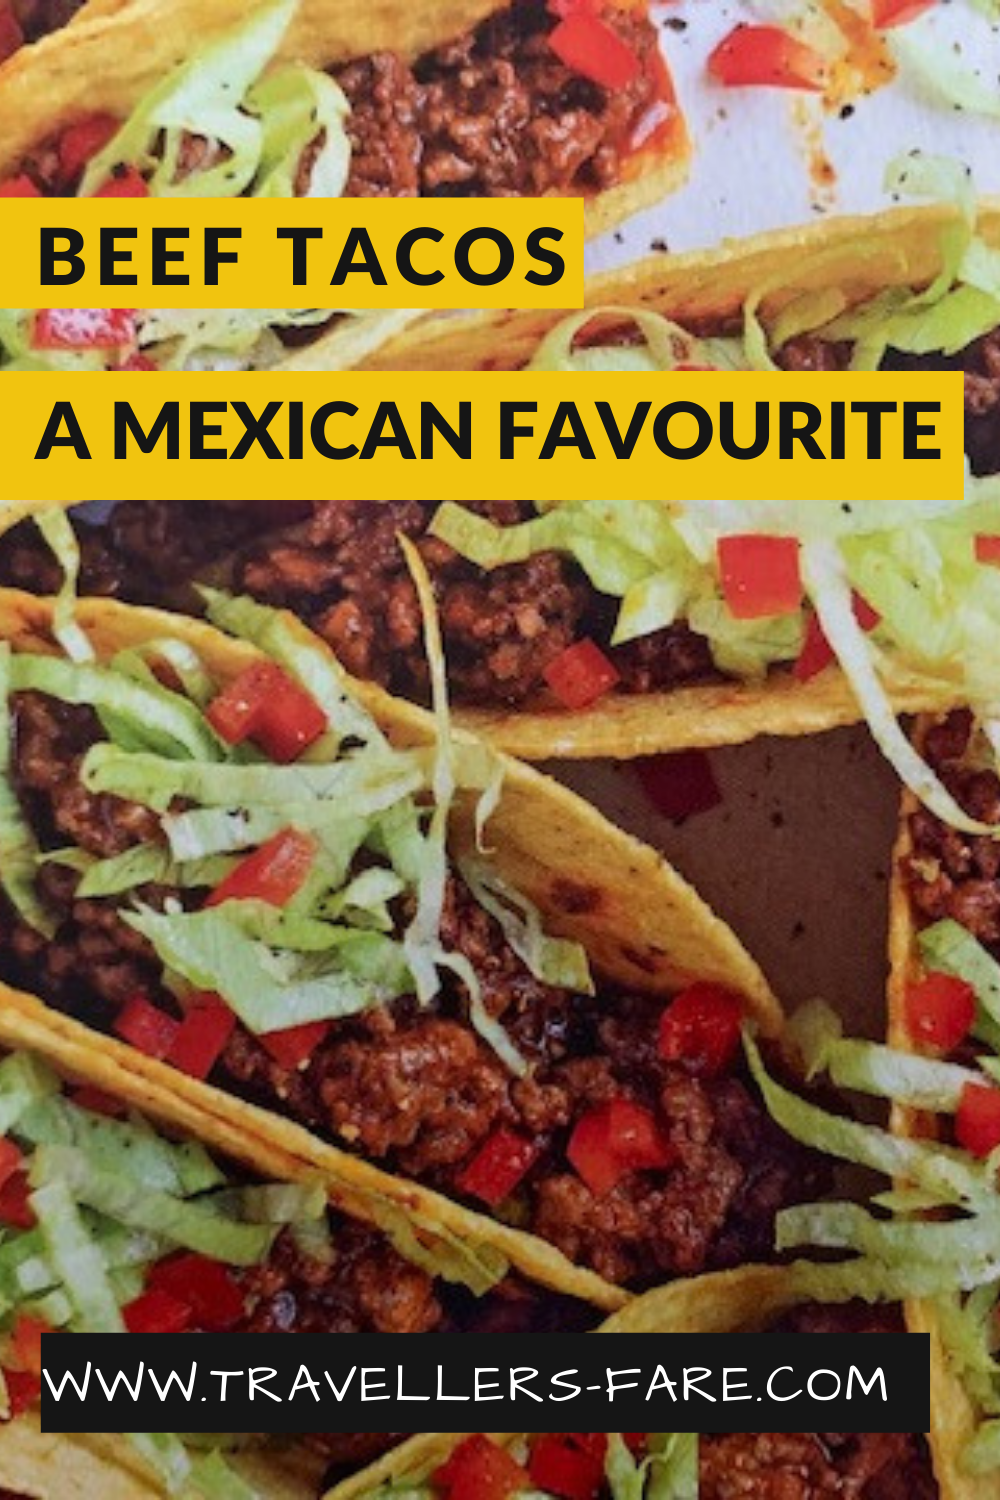 Tacos. Hard Shell Filled With Beef Spiced Mince Topped With Lettuce And Cheese.